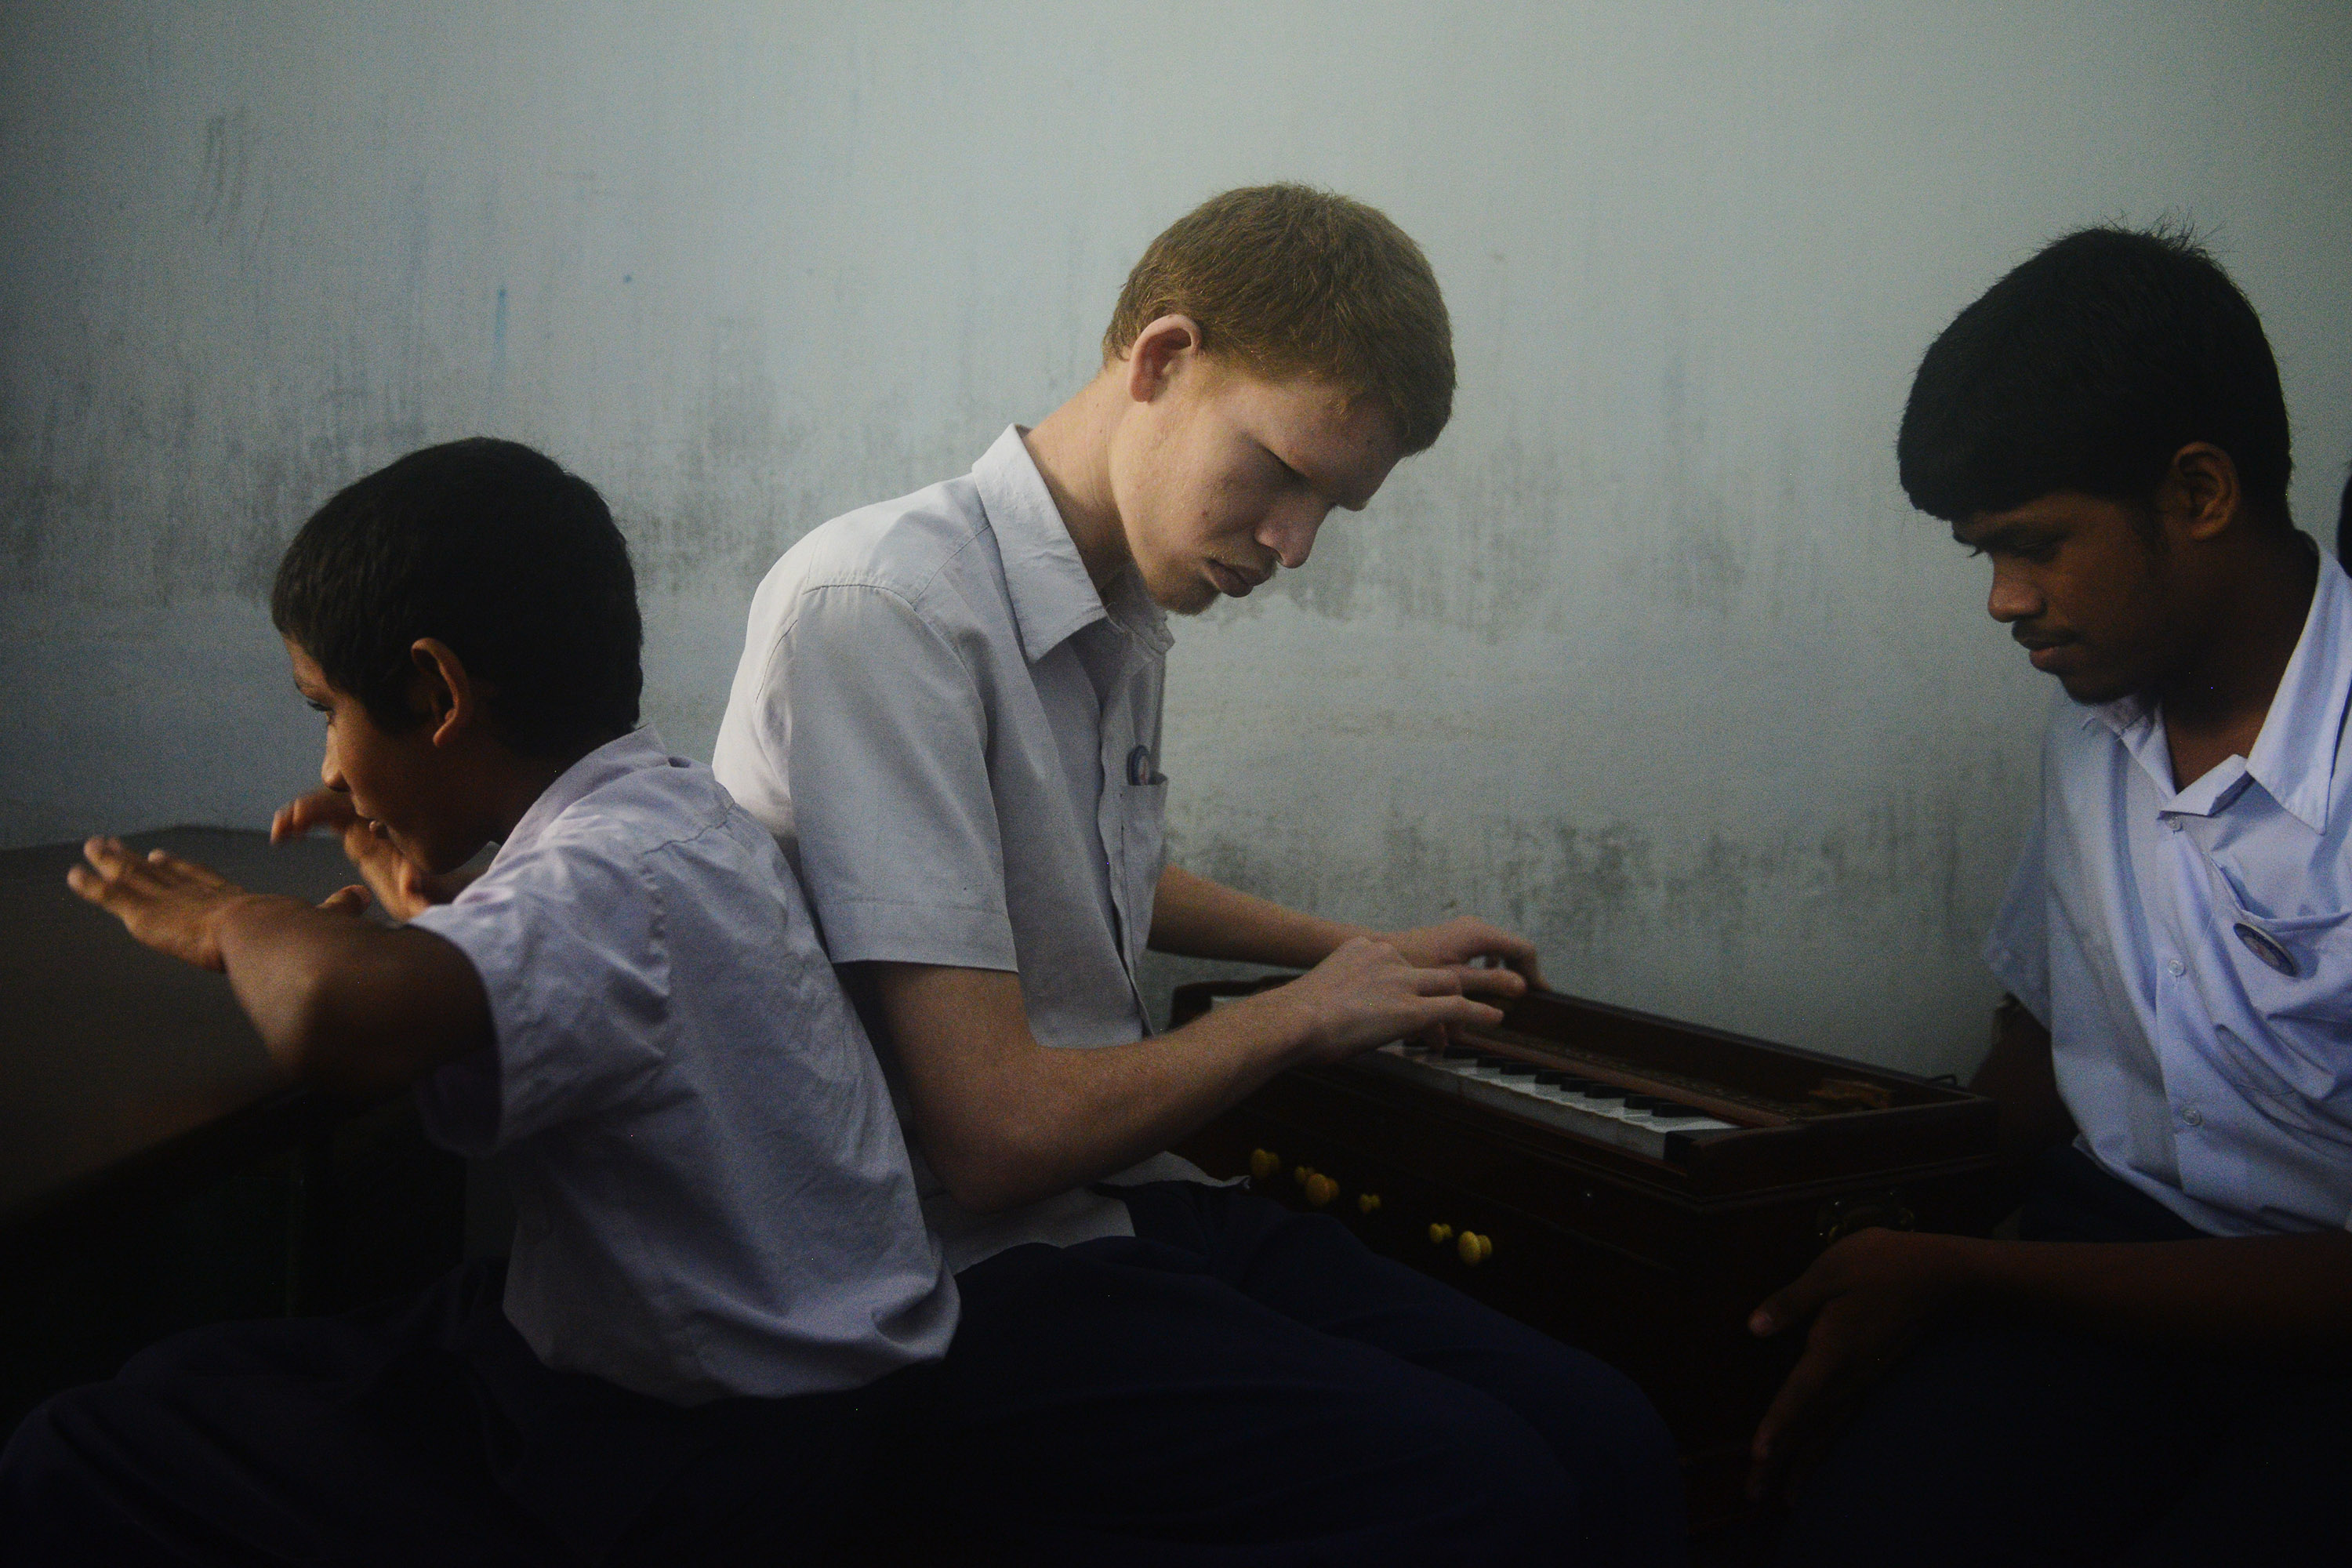 Visually impaired students during a jam session at a blind school in Calcutta. Credit: Sutirtha Chatterjee